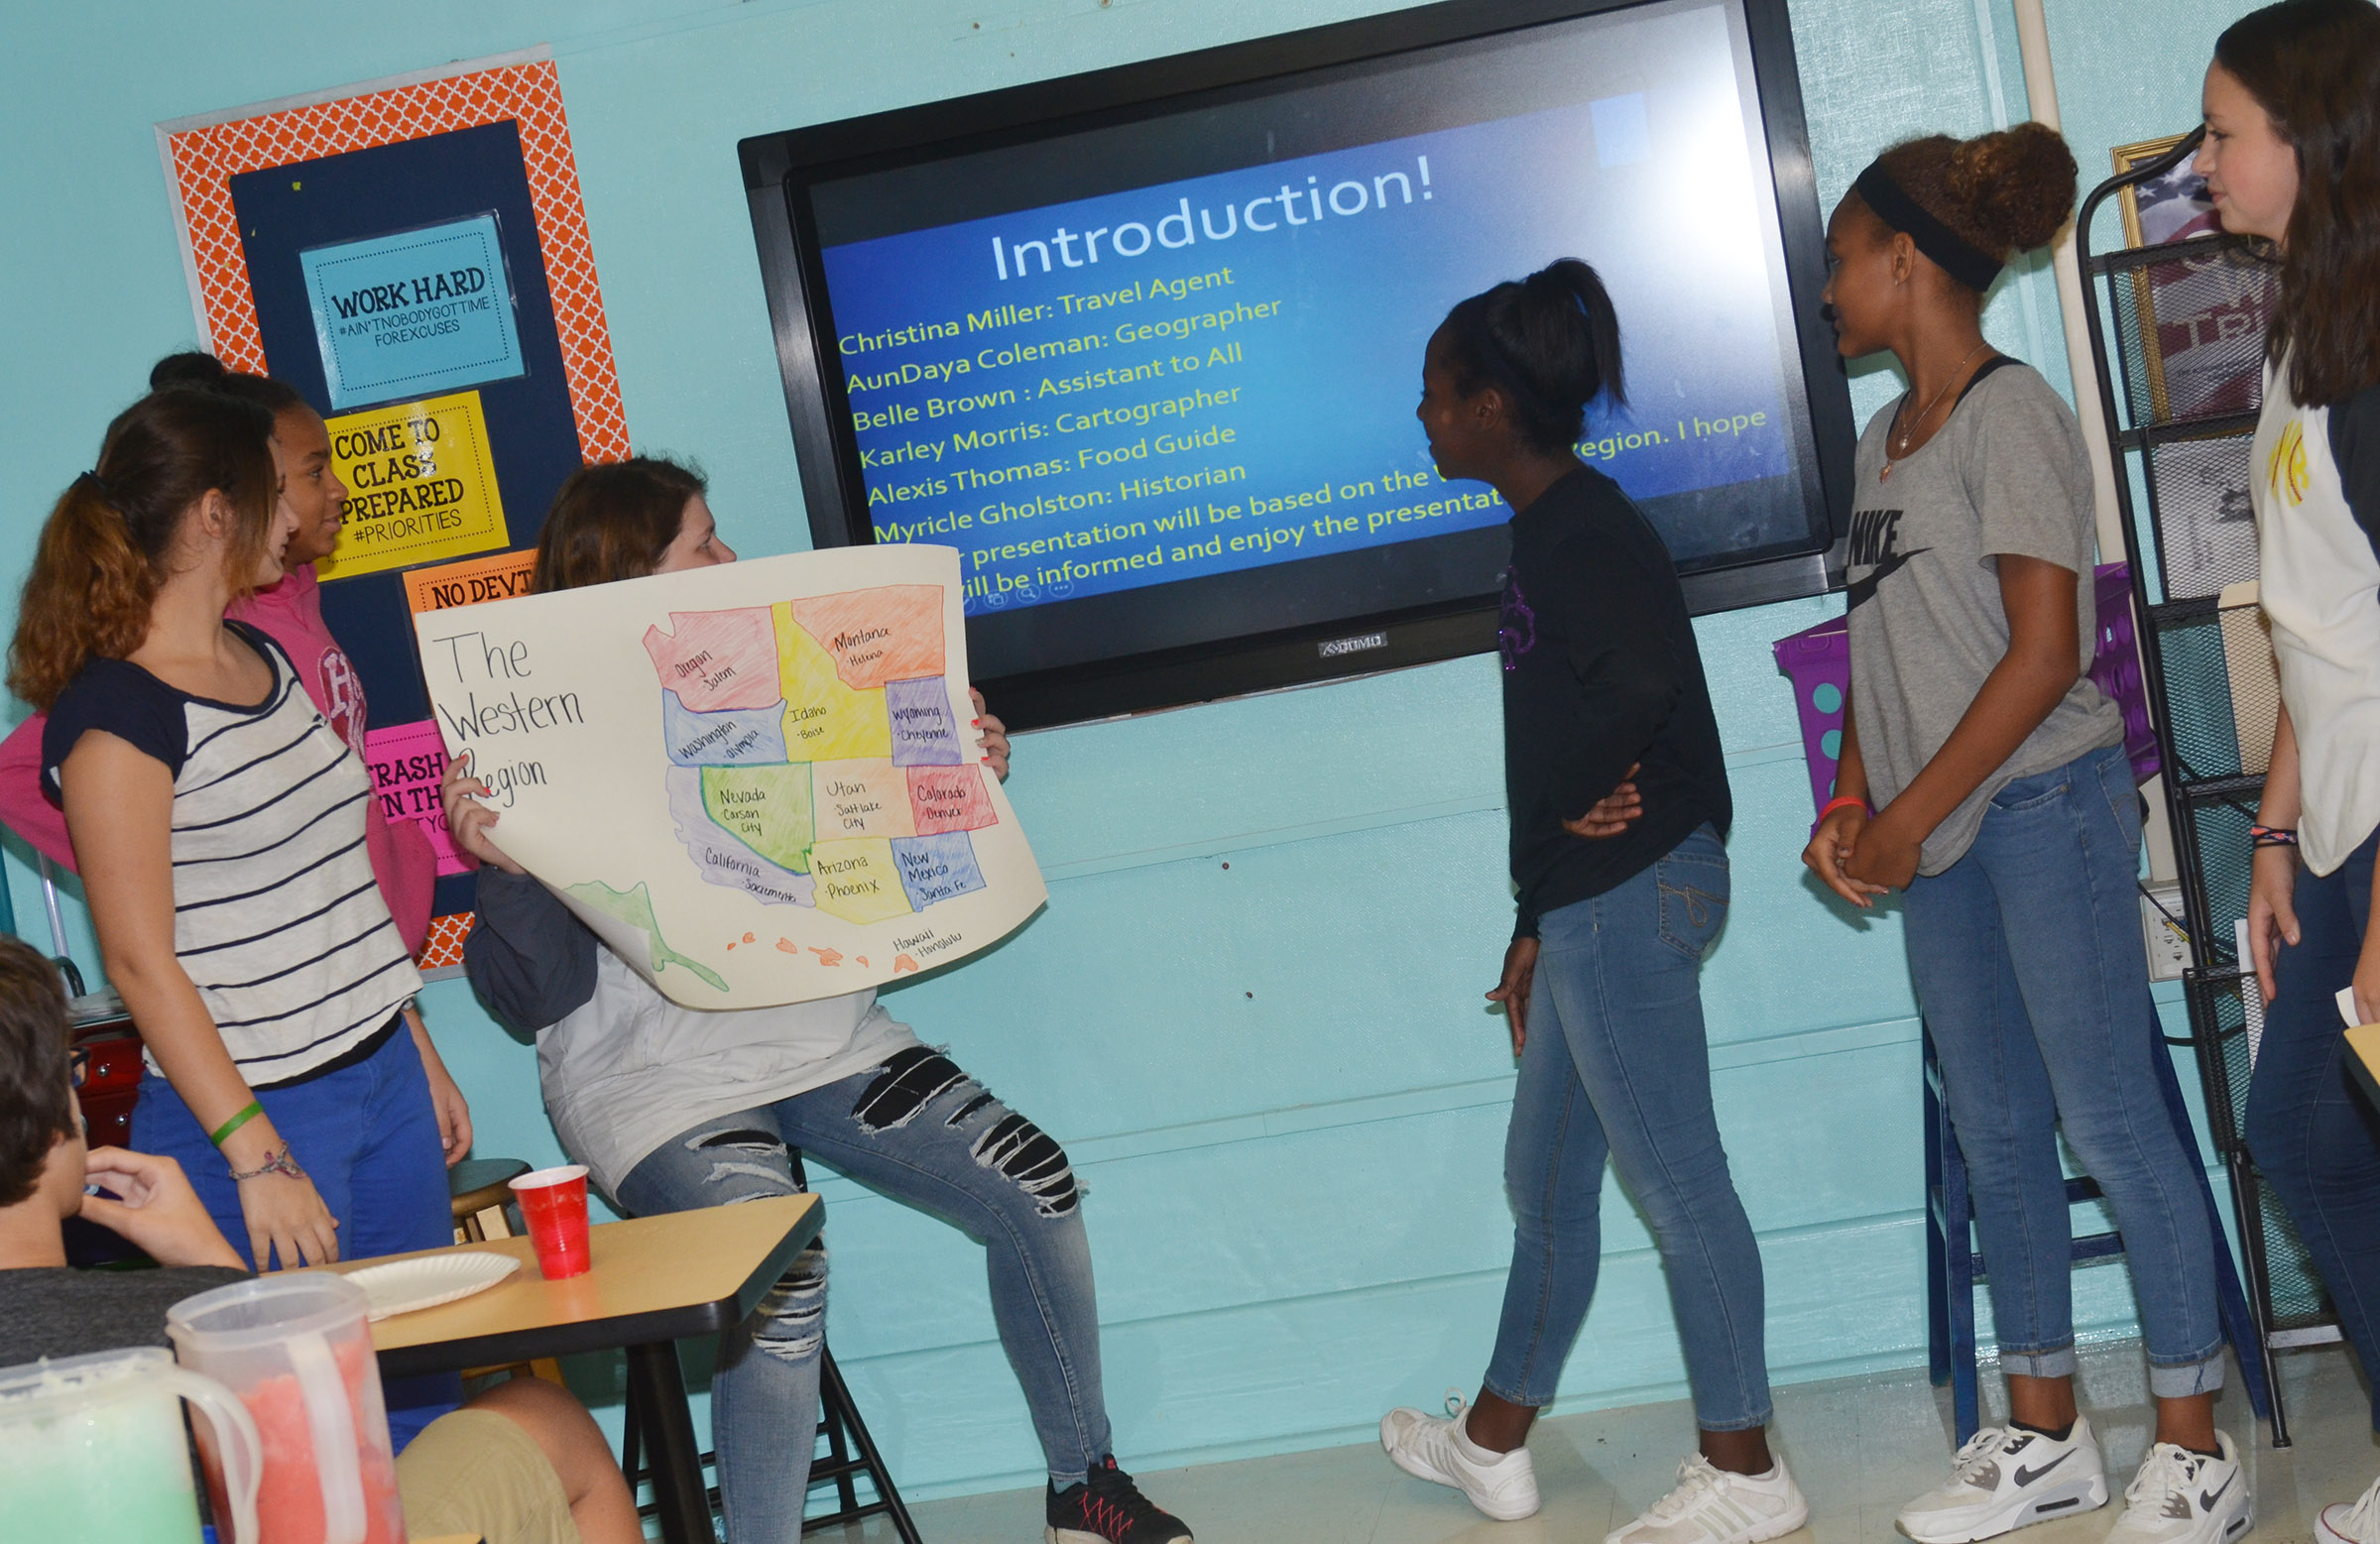 CMS eighth-graders, from left, Christina Miller, AunDaya Coleman, Belle Brown, Myricle Gholston, Alexis Thomas and Karley Morris present about the western region.